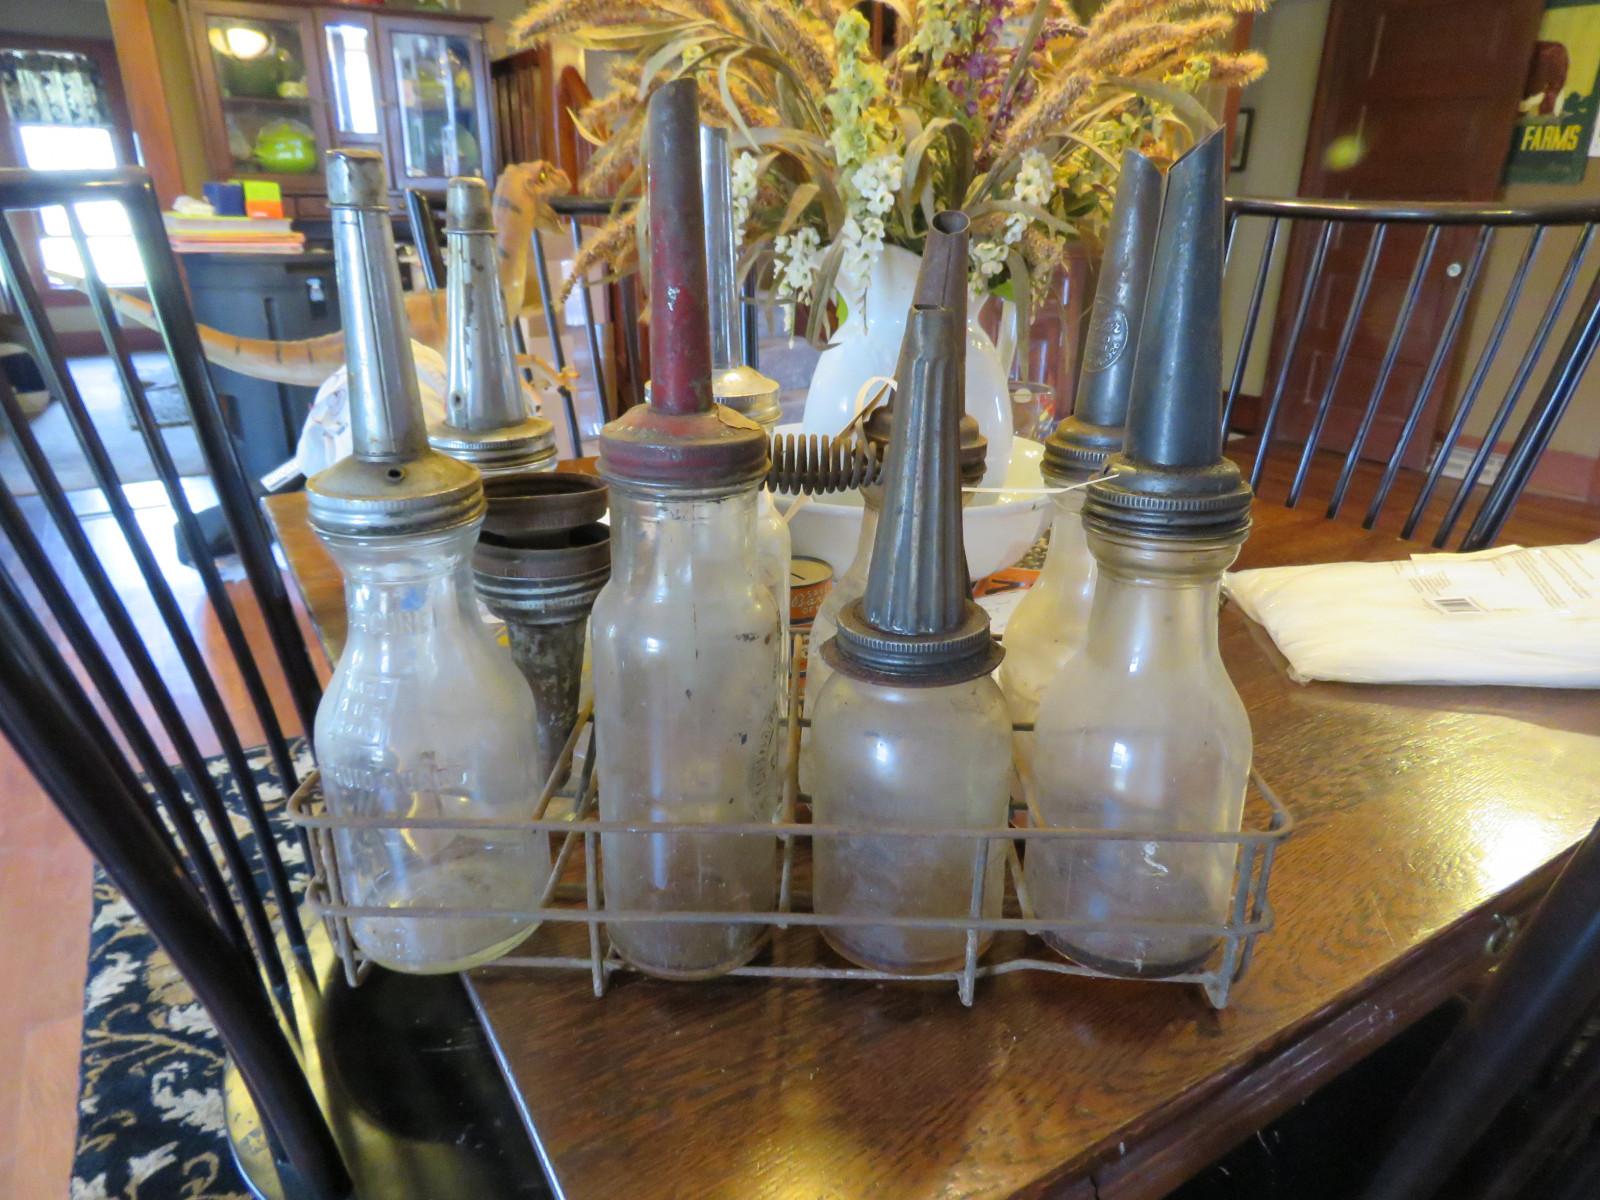 VINTAGE OIL RACK WITH ASSORTED 8 GLASS OIL BOTTLES - Image 4